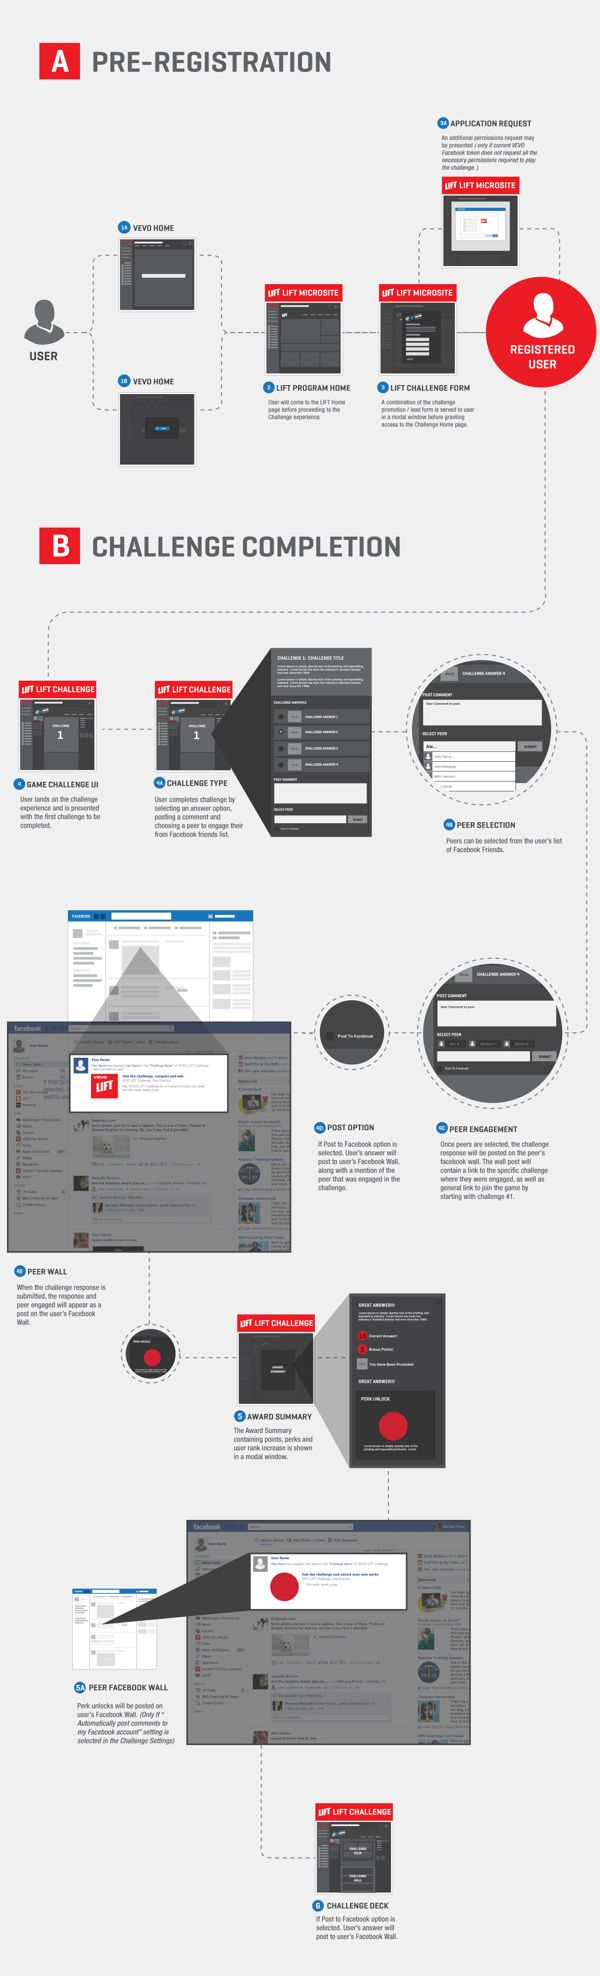 Excellent Graphical Process Flow with callouts // Social Media CHALLENGE UX // Michael Pons